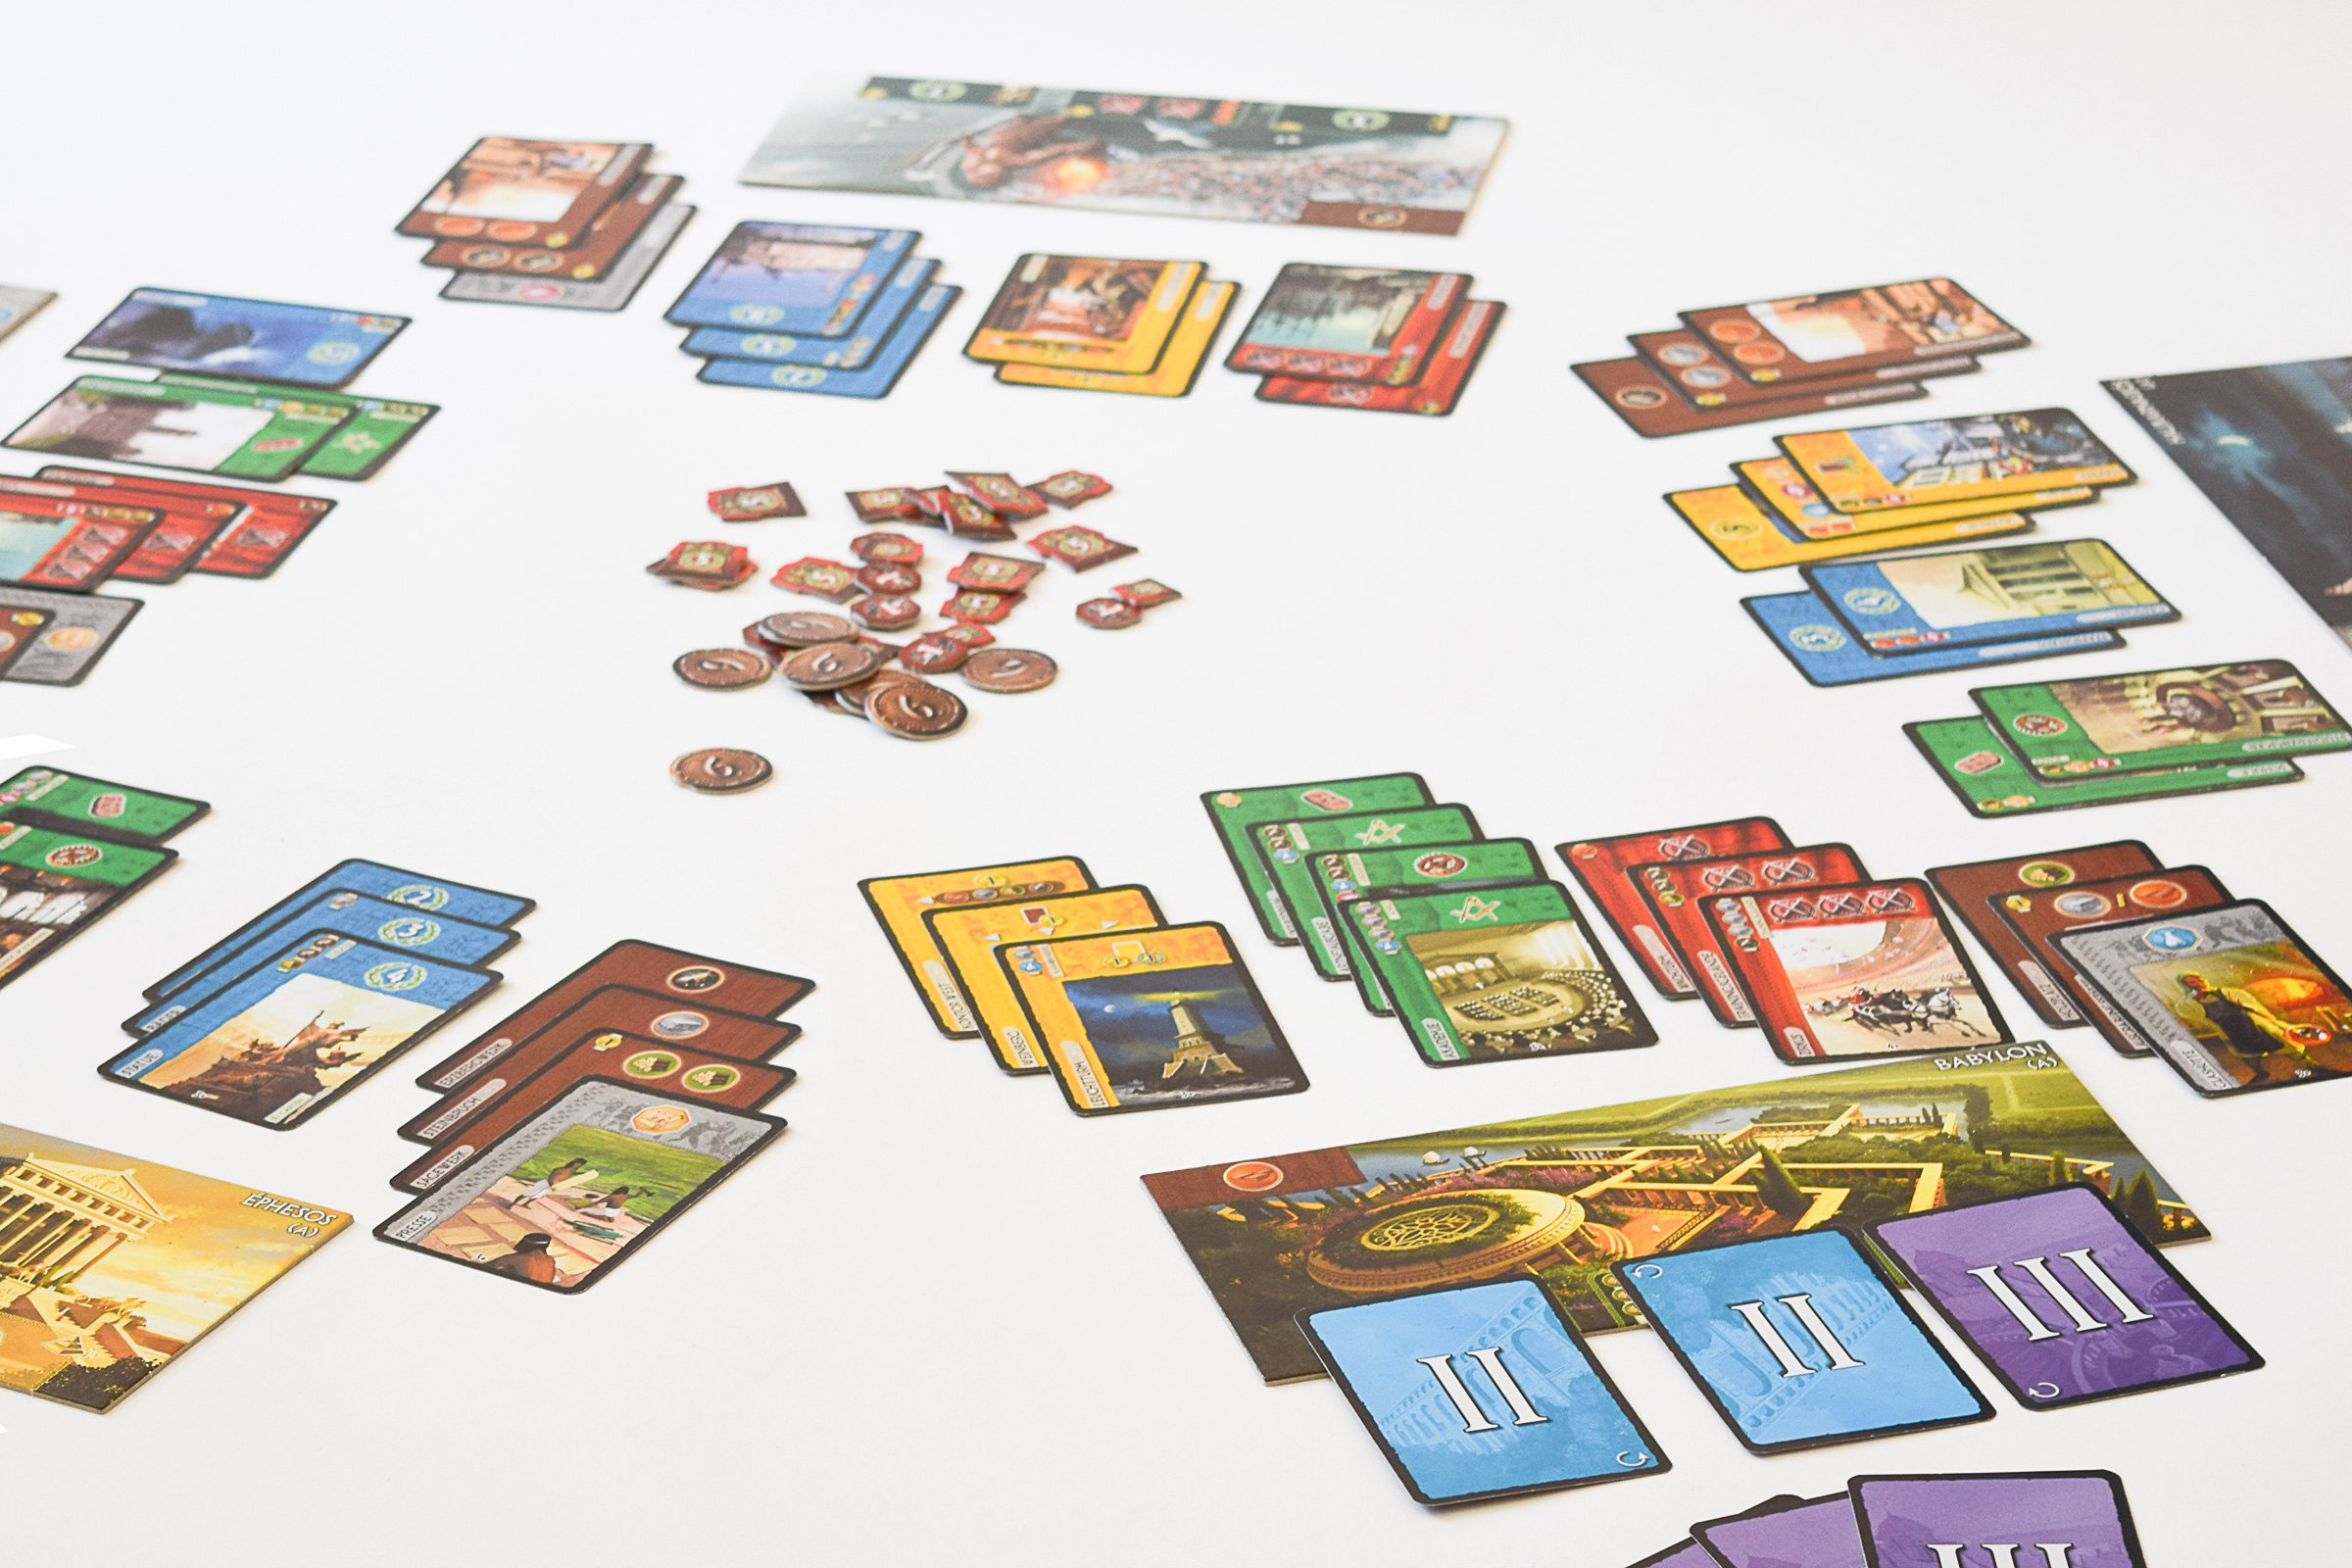 10 Board Games To Play With Friends & Family | 7 Wonders | Little House On The Corner